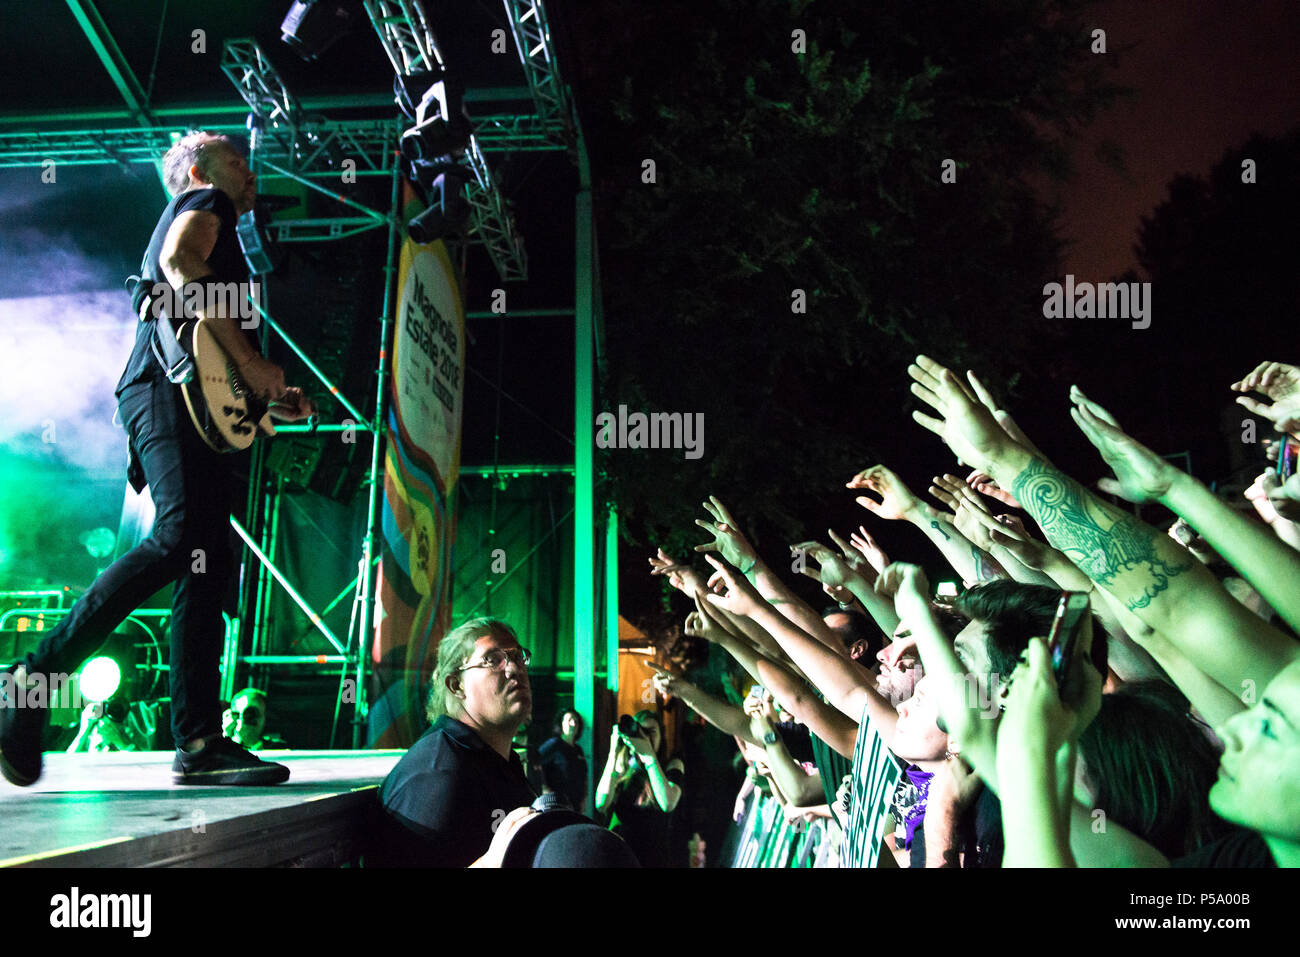 June 25, 2018 - Milan, Italy-June 25, 2018: Rise Against punk rock band from Chicago performs live in Milan Credit: Stefano Guidi/ZUMA Wire/Alamy Live News - Stock Image